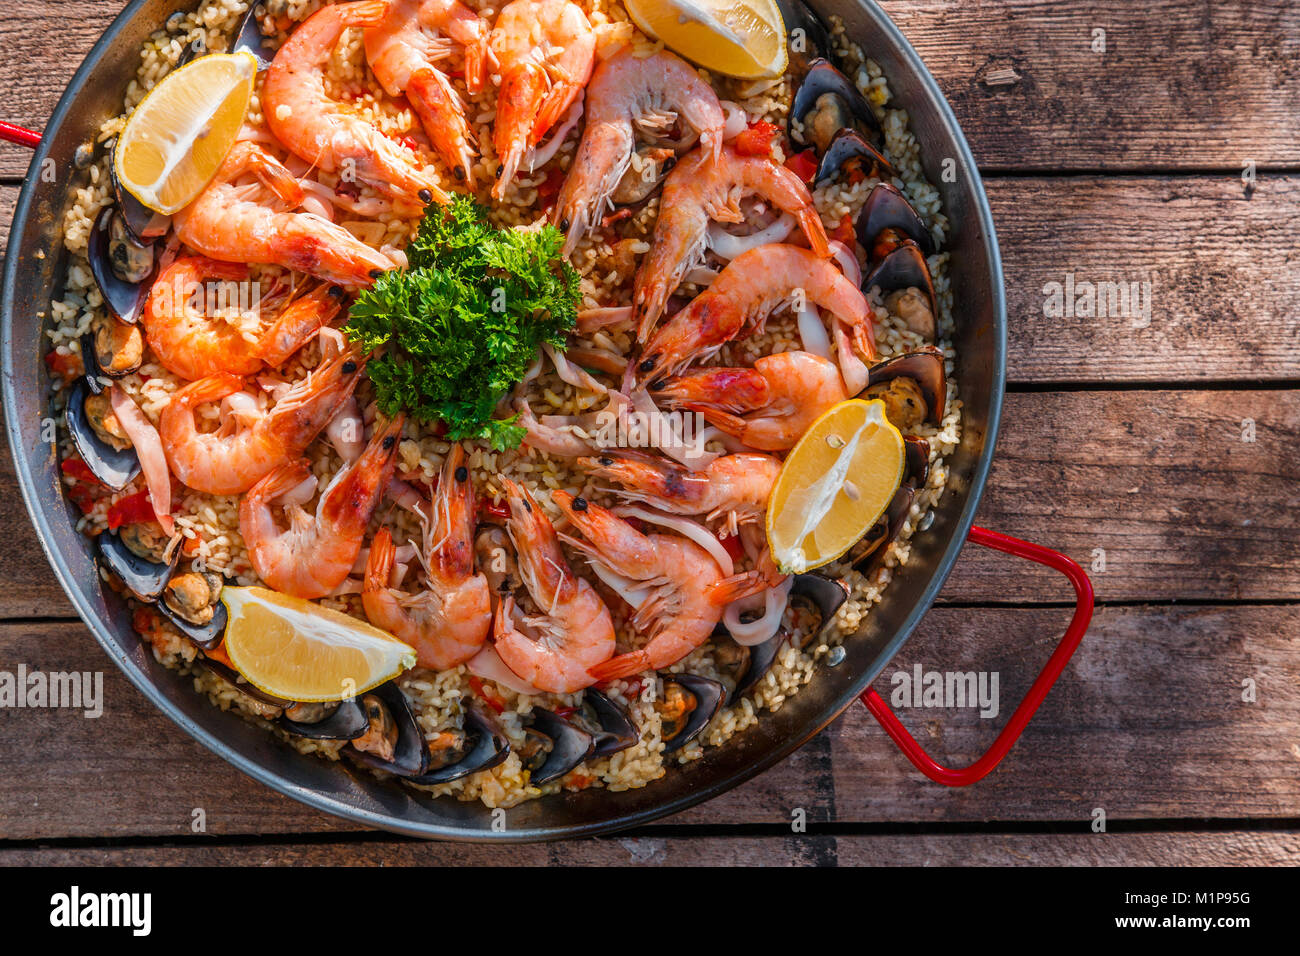 Traditional seafood paella in the fry pan on a wooden old table, top view - Stock Image